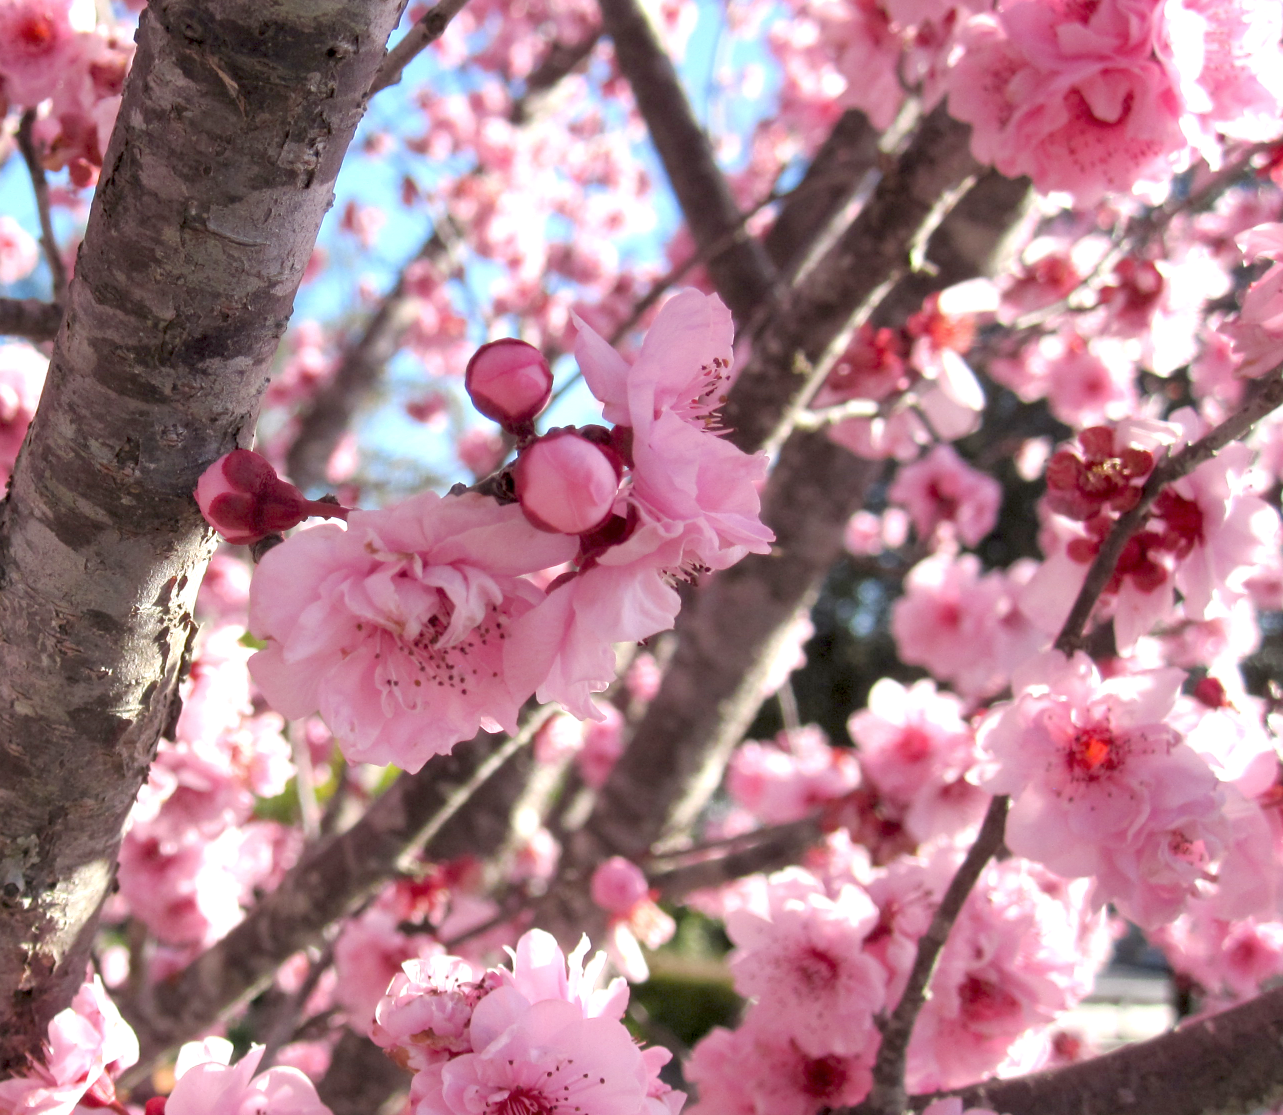 Cherry blossoms dating in Australia